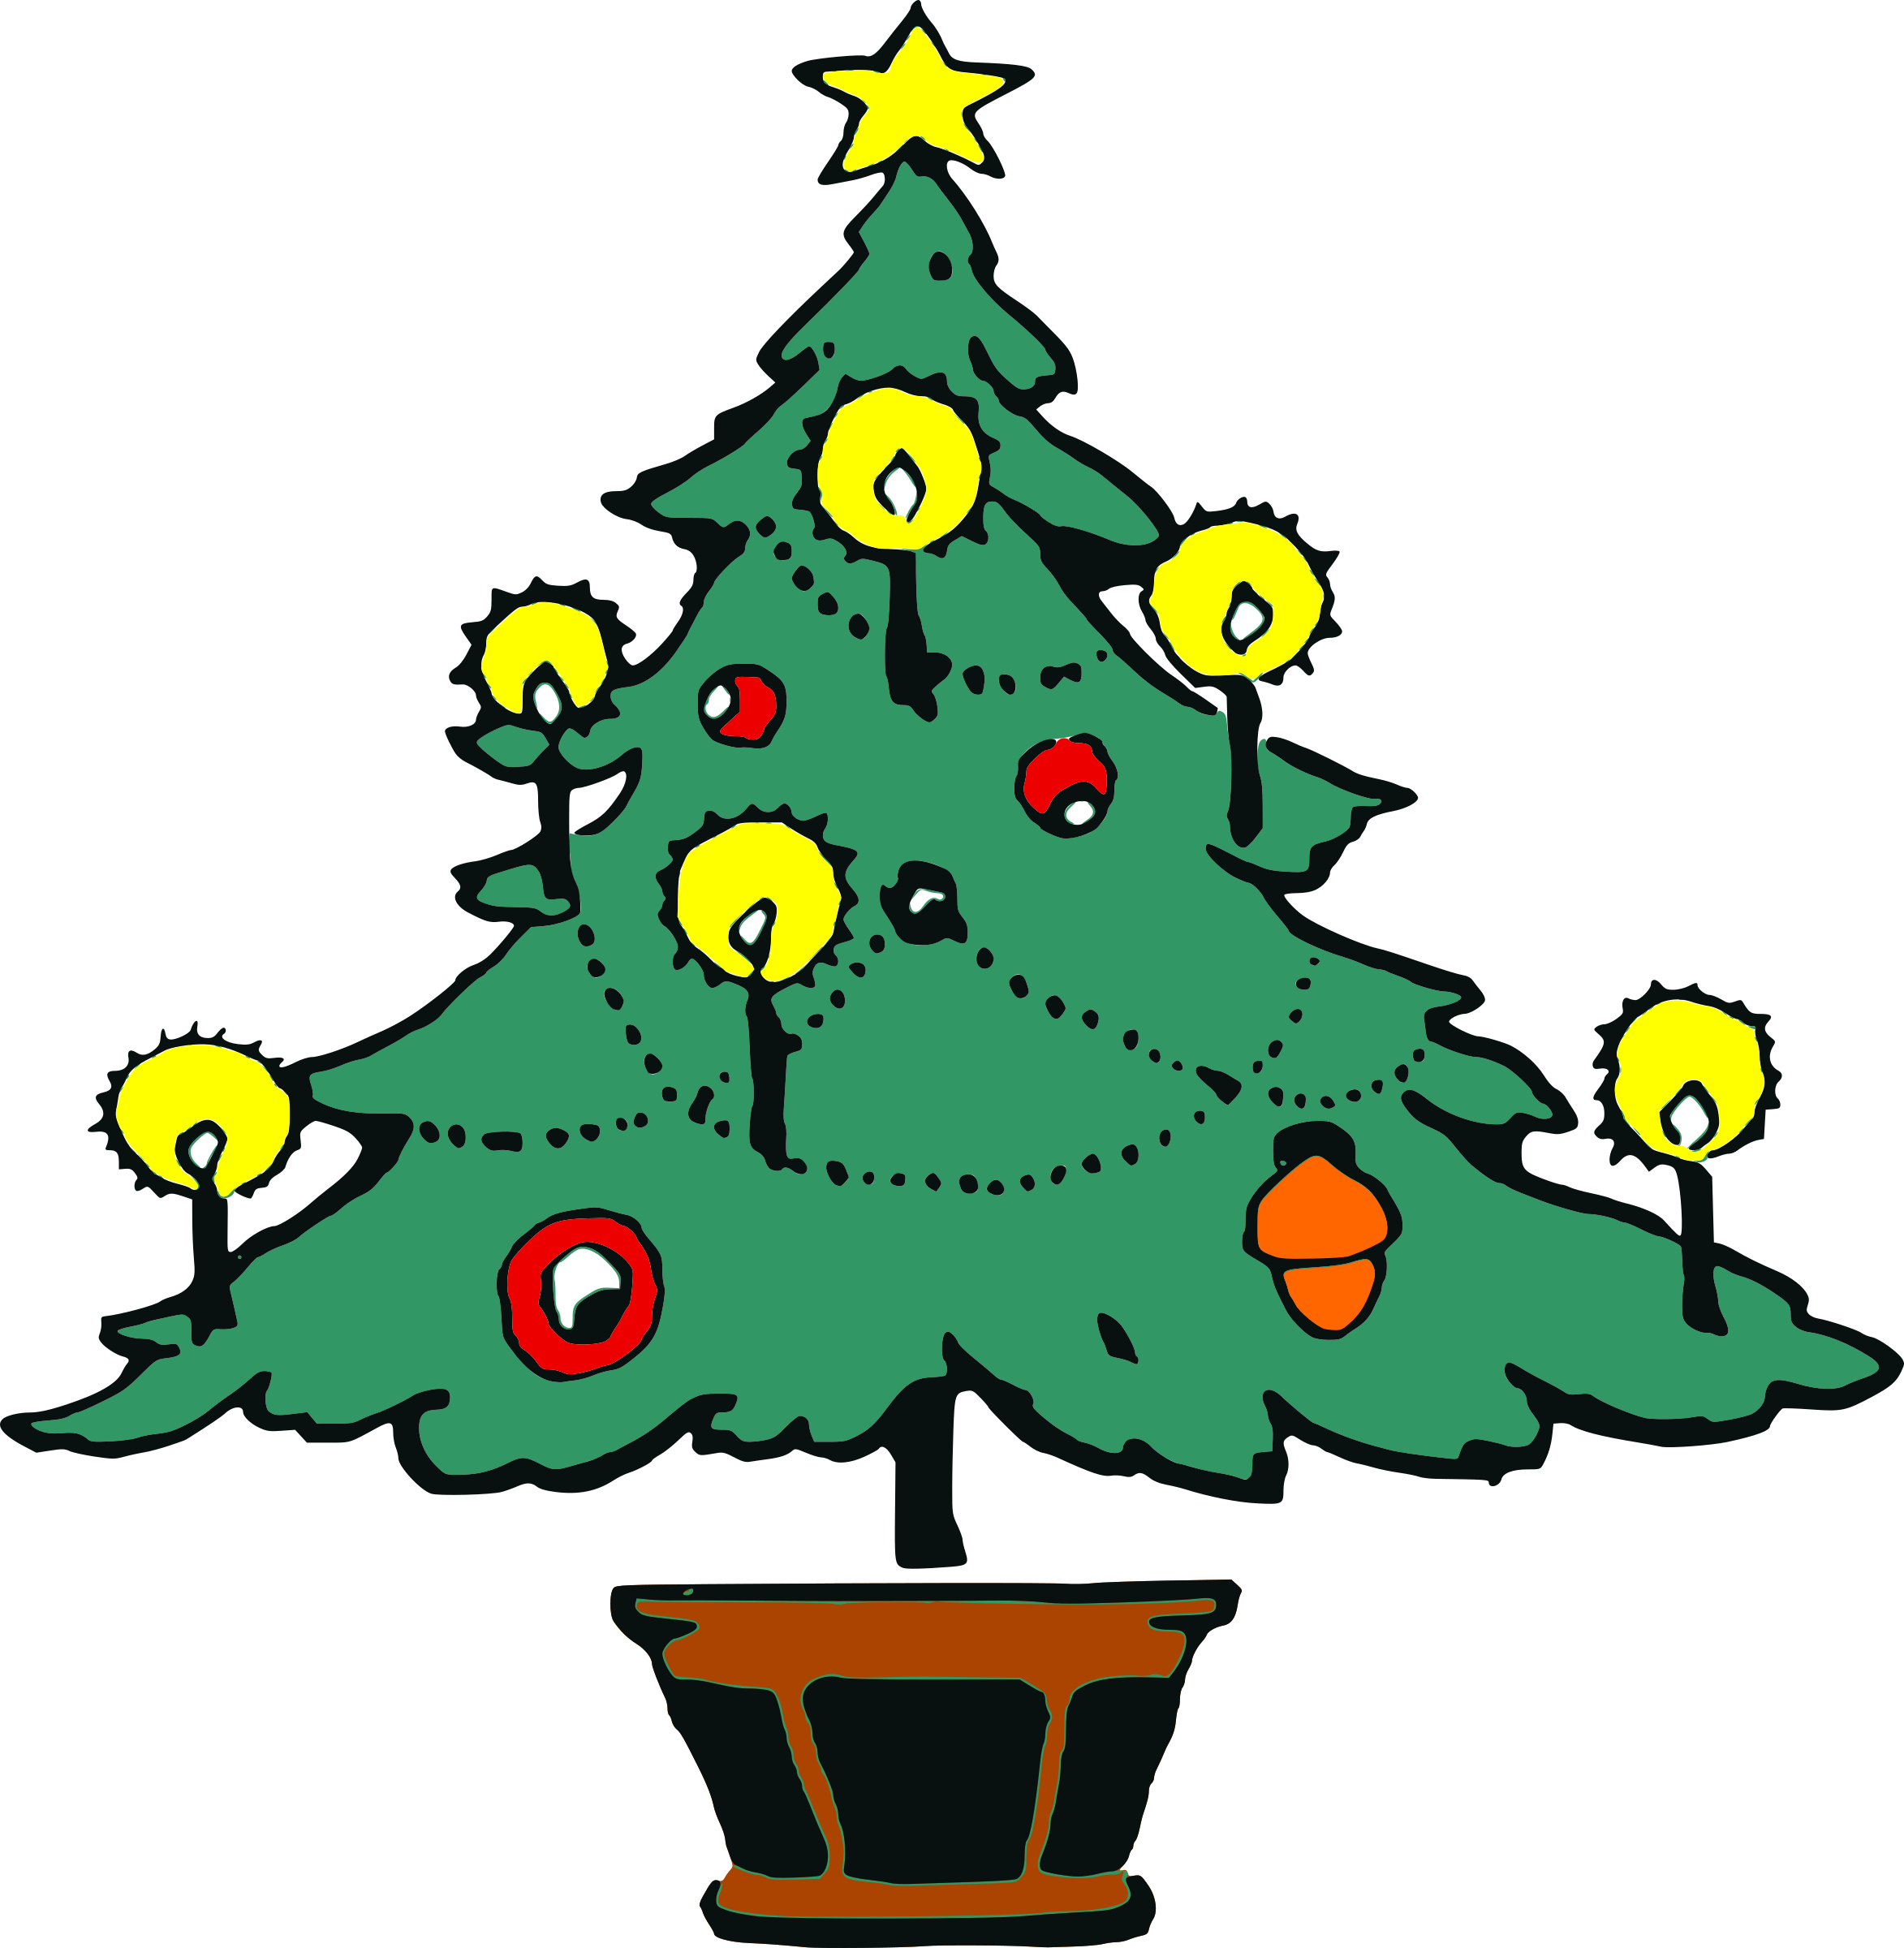 Horseshoe clipart silhouette. Christmas tree images gallery